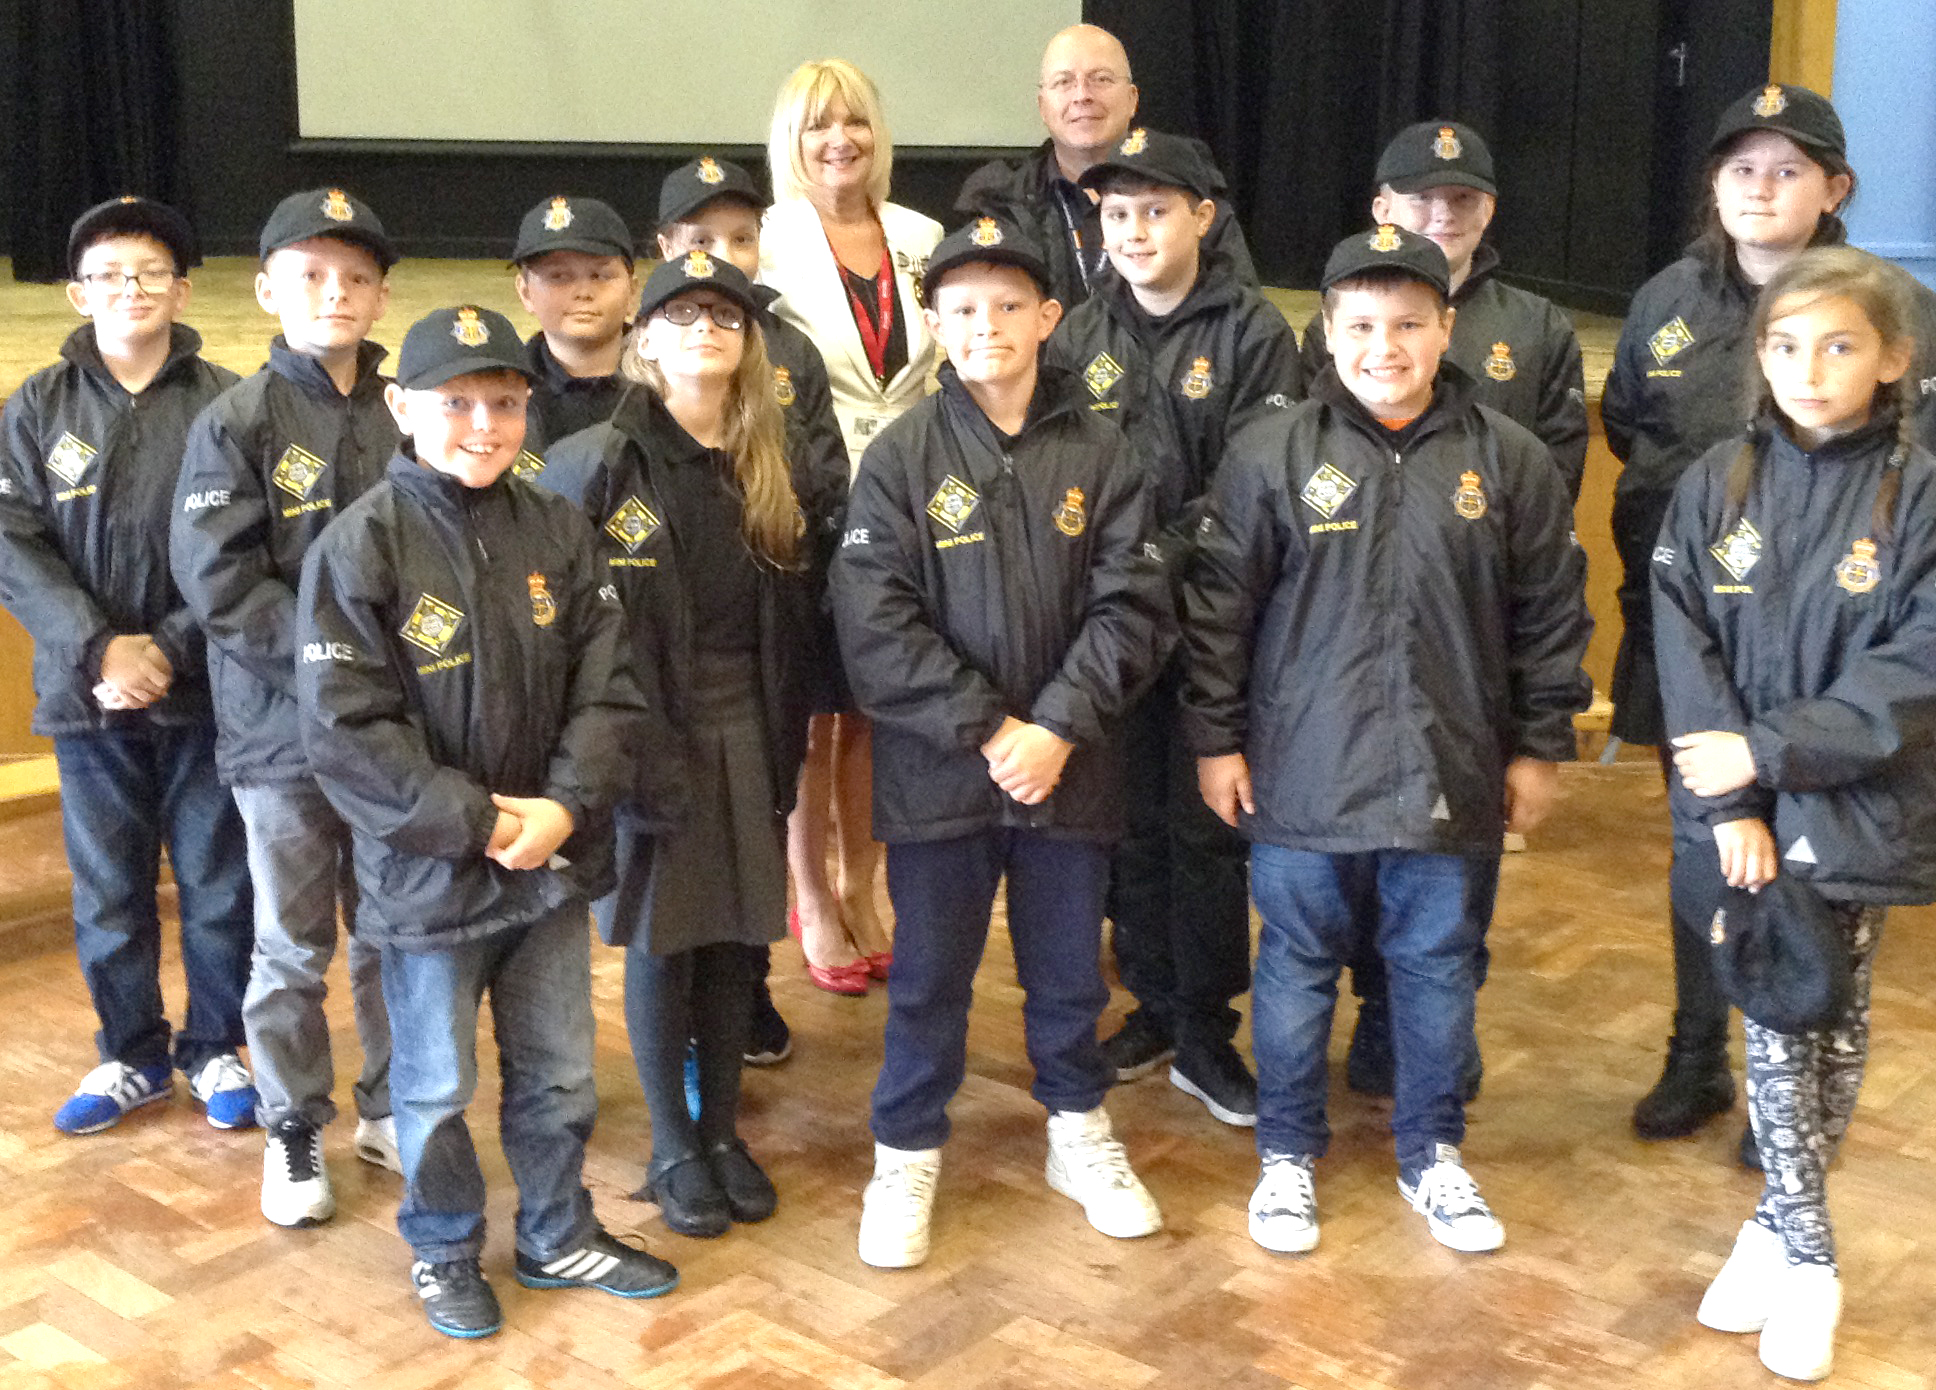 St. Joseph's School Mini Police